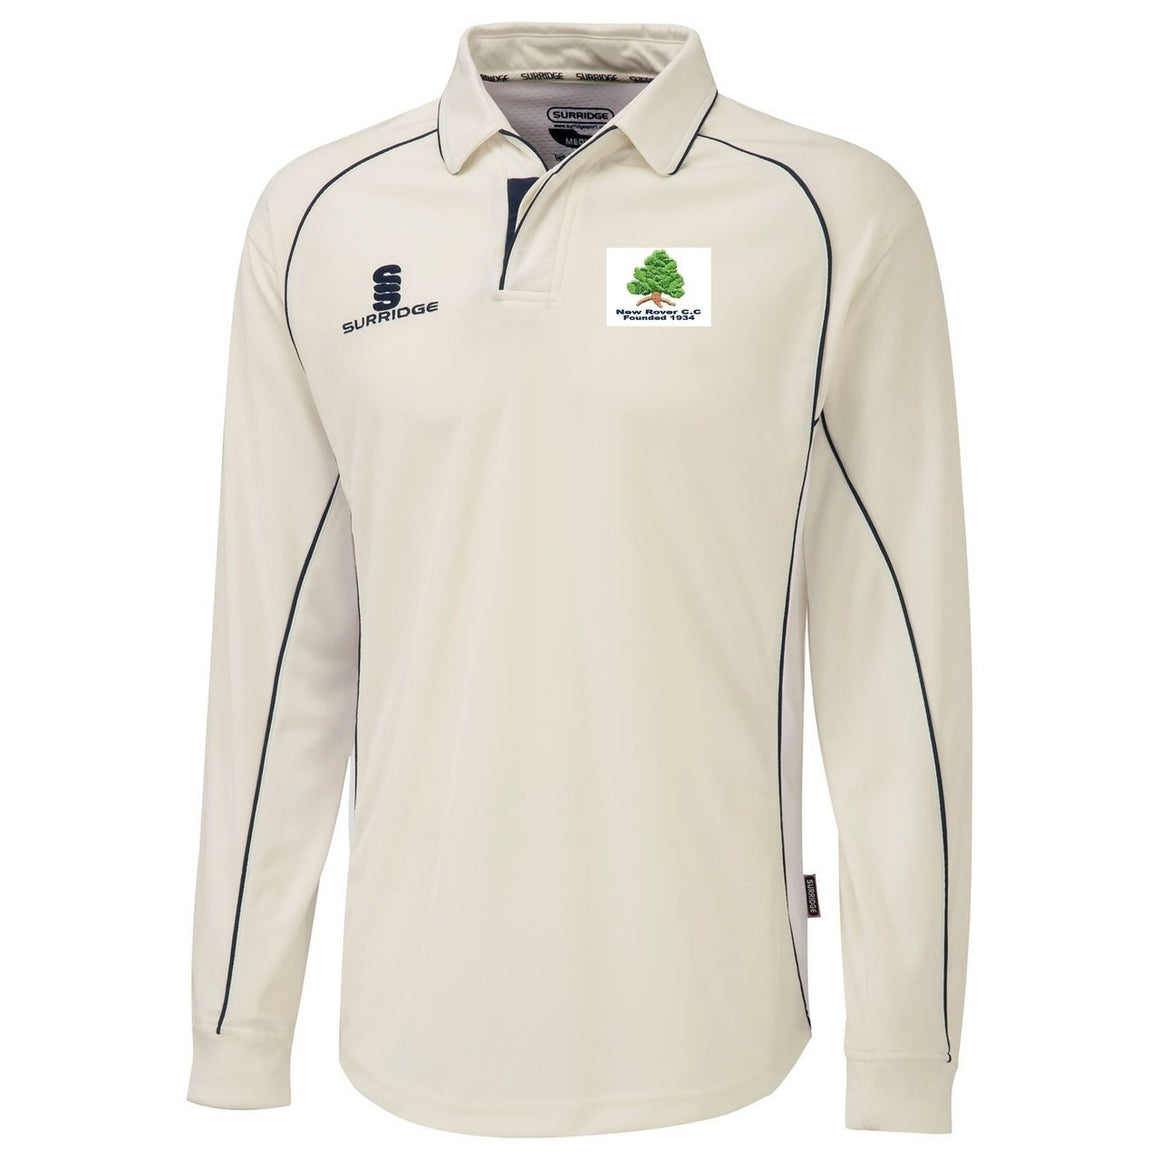 New Rover CC Playing Shirt (Long Sleeve)